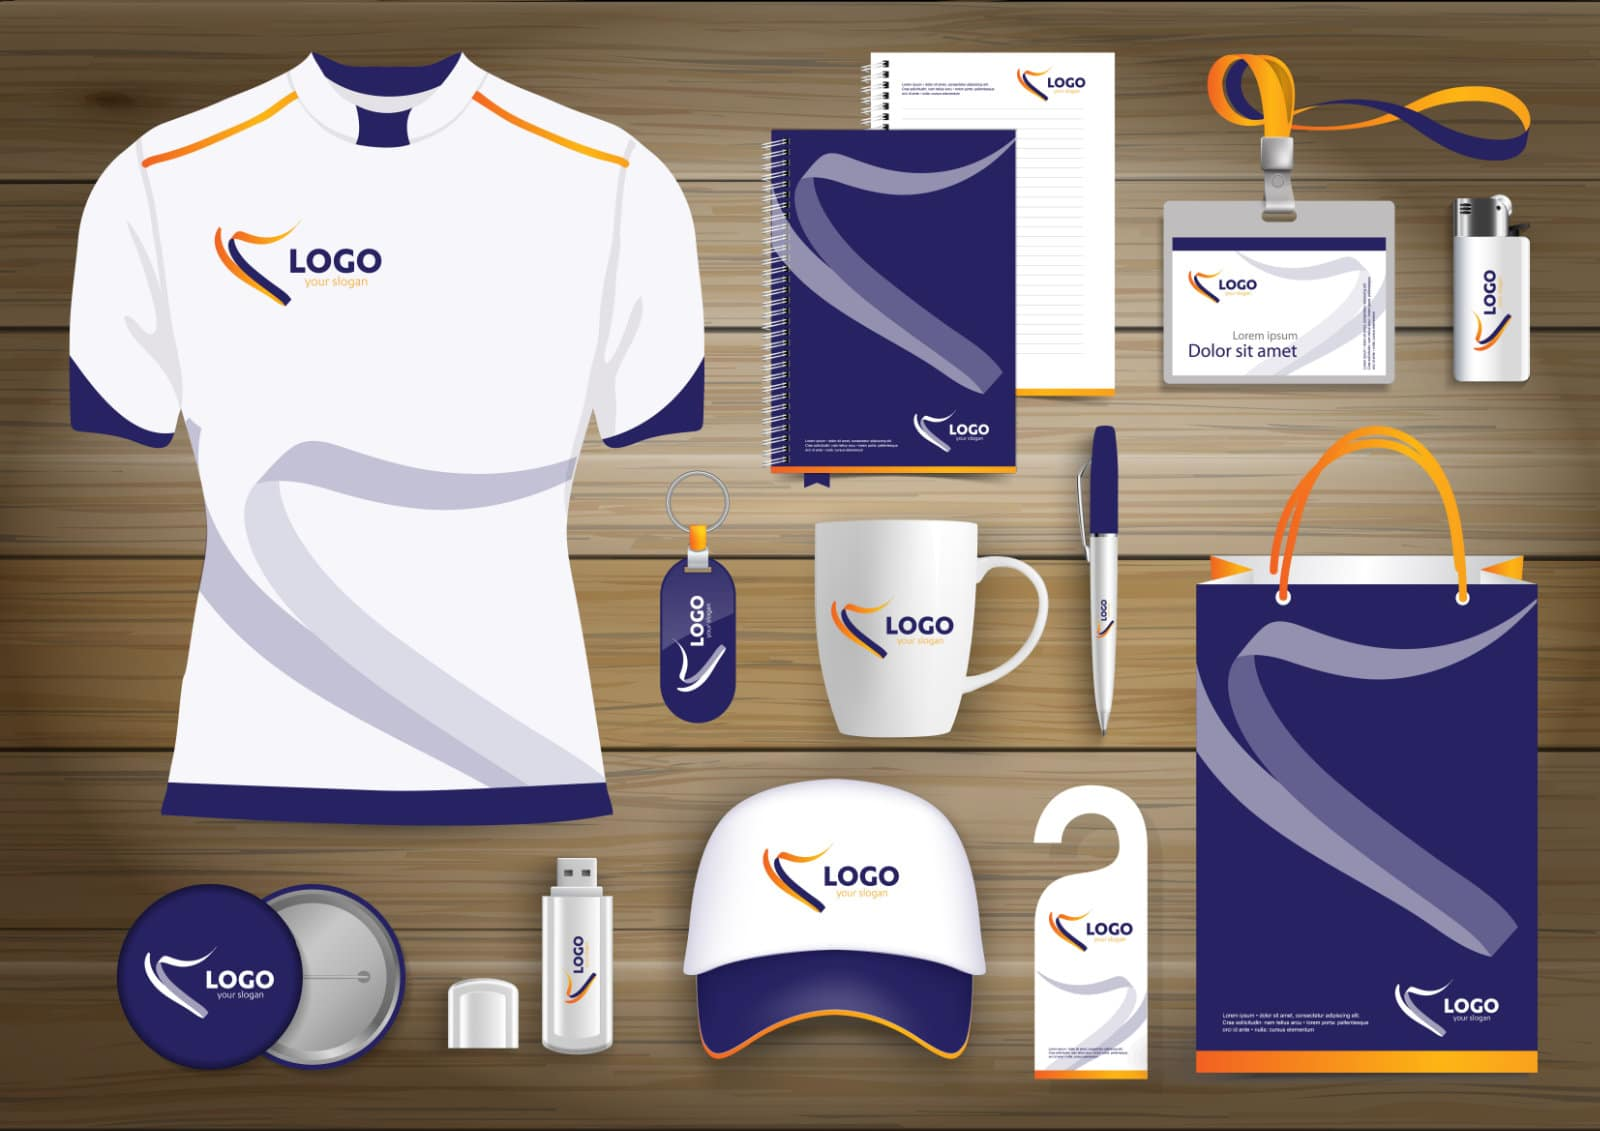 5 Benefits of using Branded Merchandise to Market Your Business